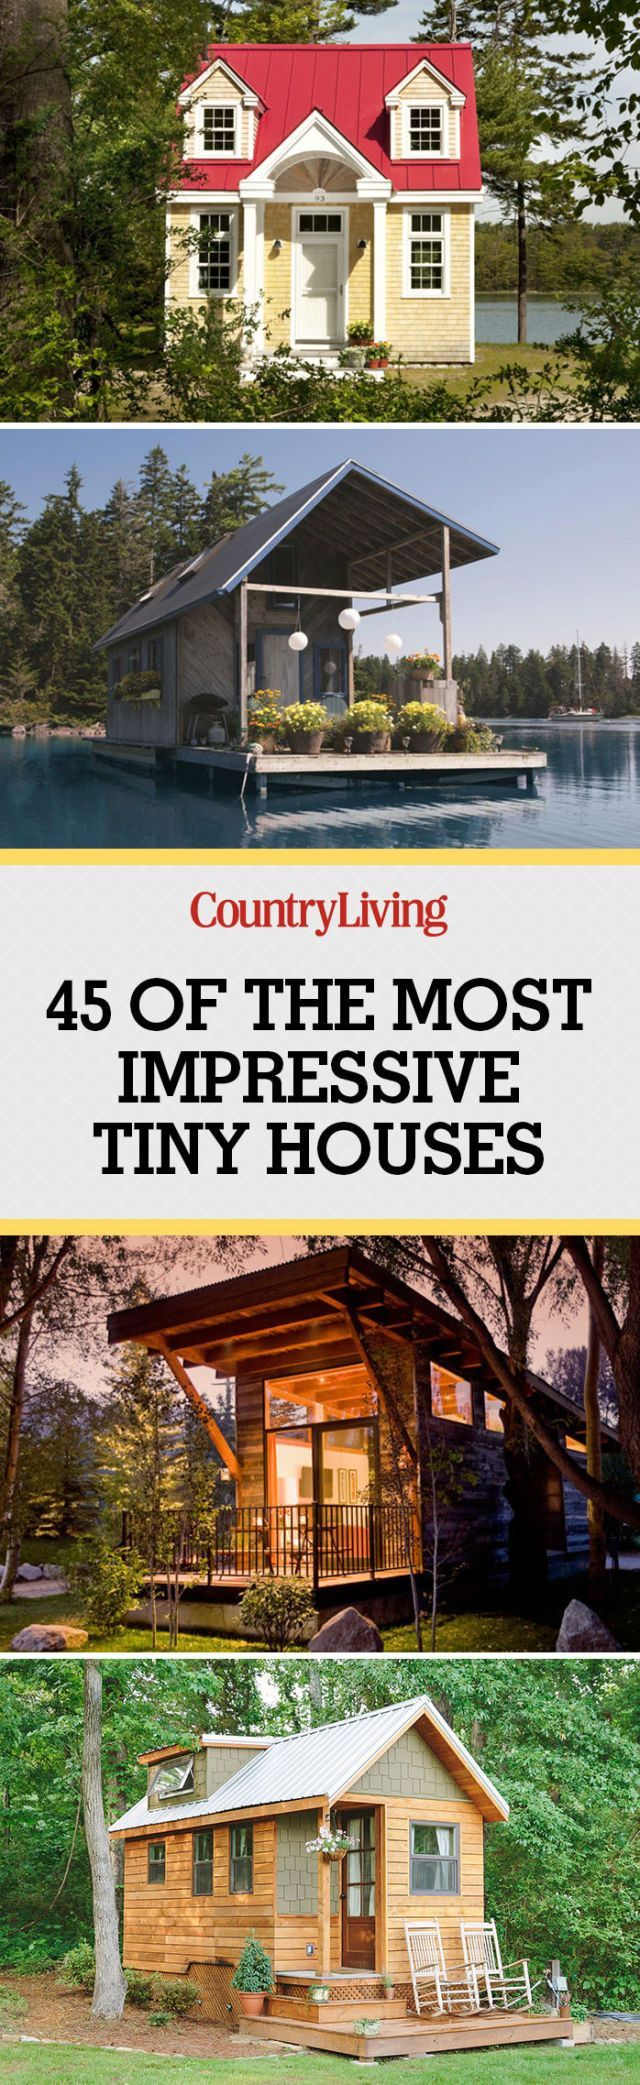 best tiny house images on pinterest small houses tiny cabins